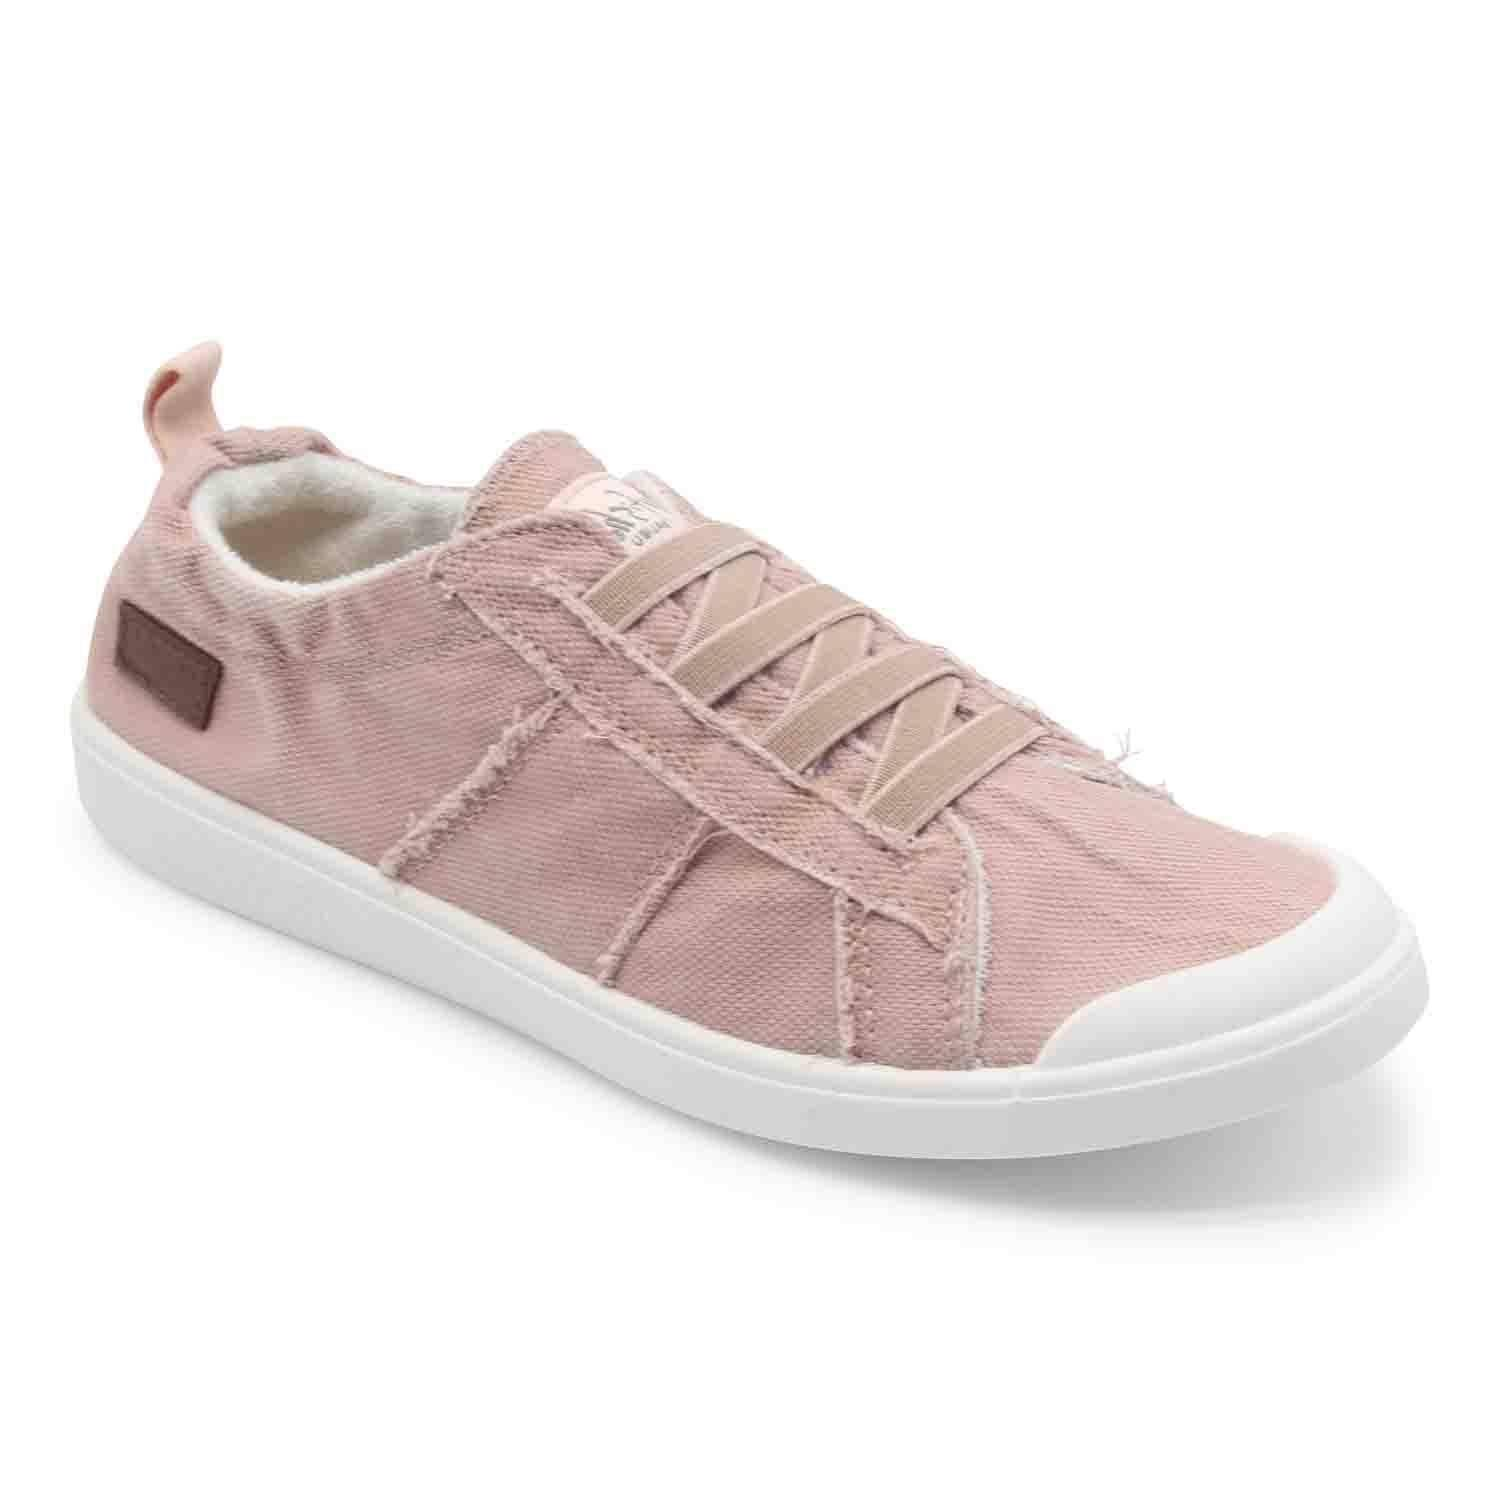 Blowfish Malibu Womens Vex Shoes